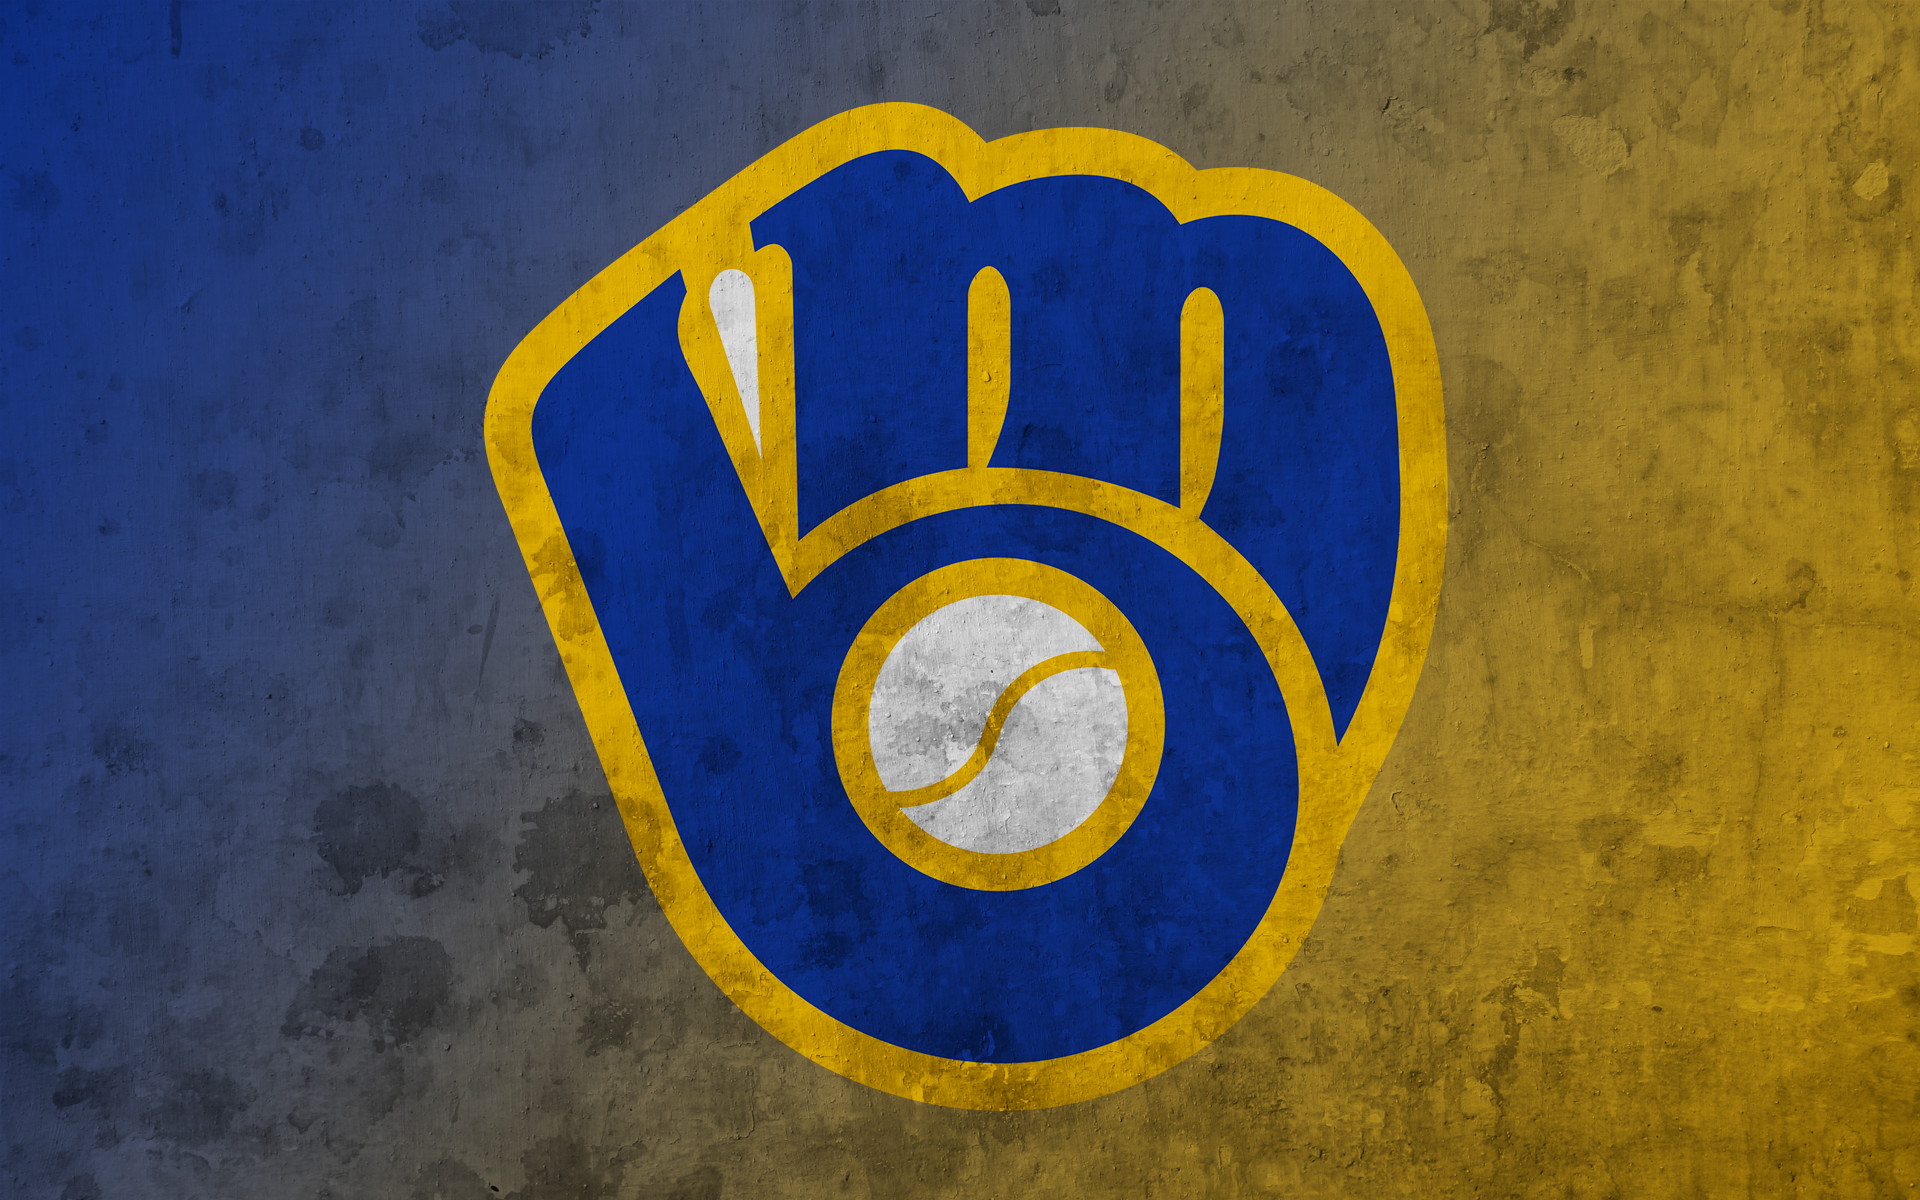 1920x1200 Desktop Images of Milwaukee Brewers: 12.17.15 by Nena Ainsworth